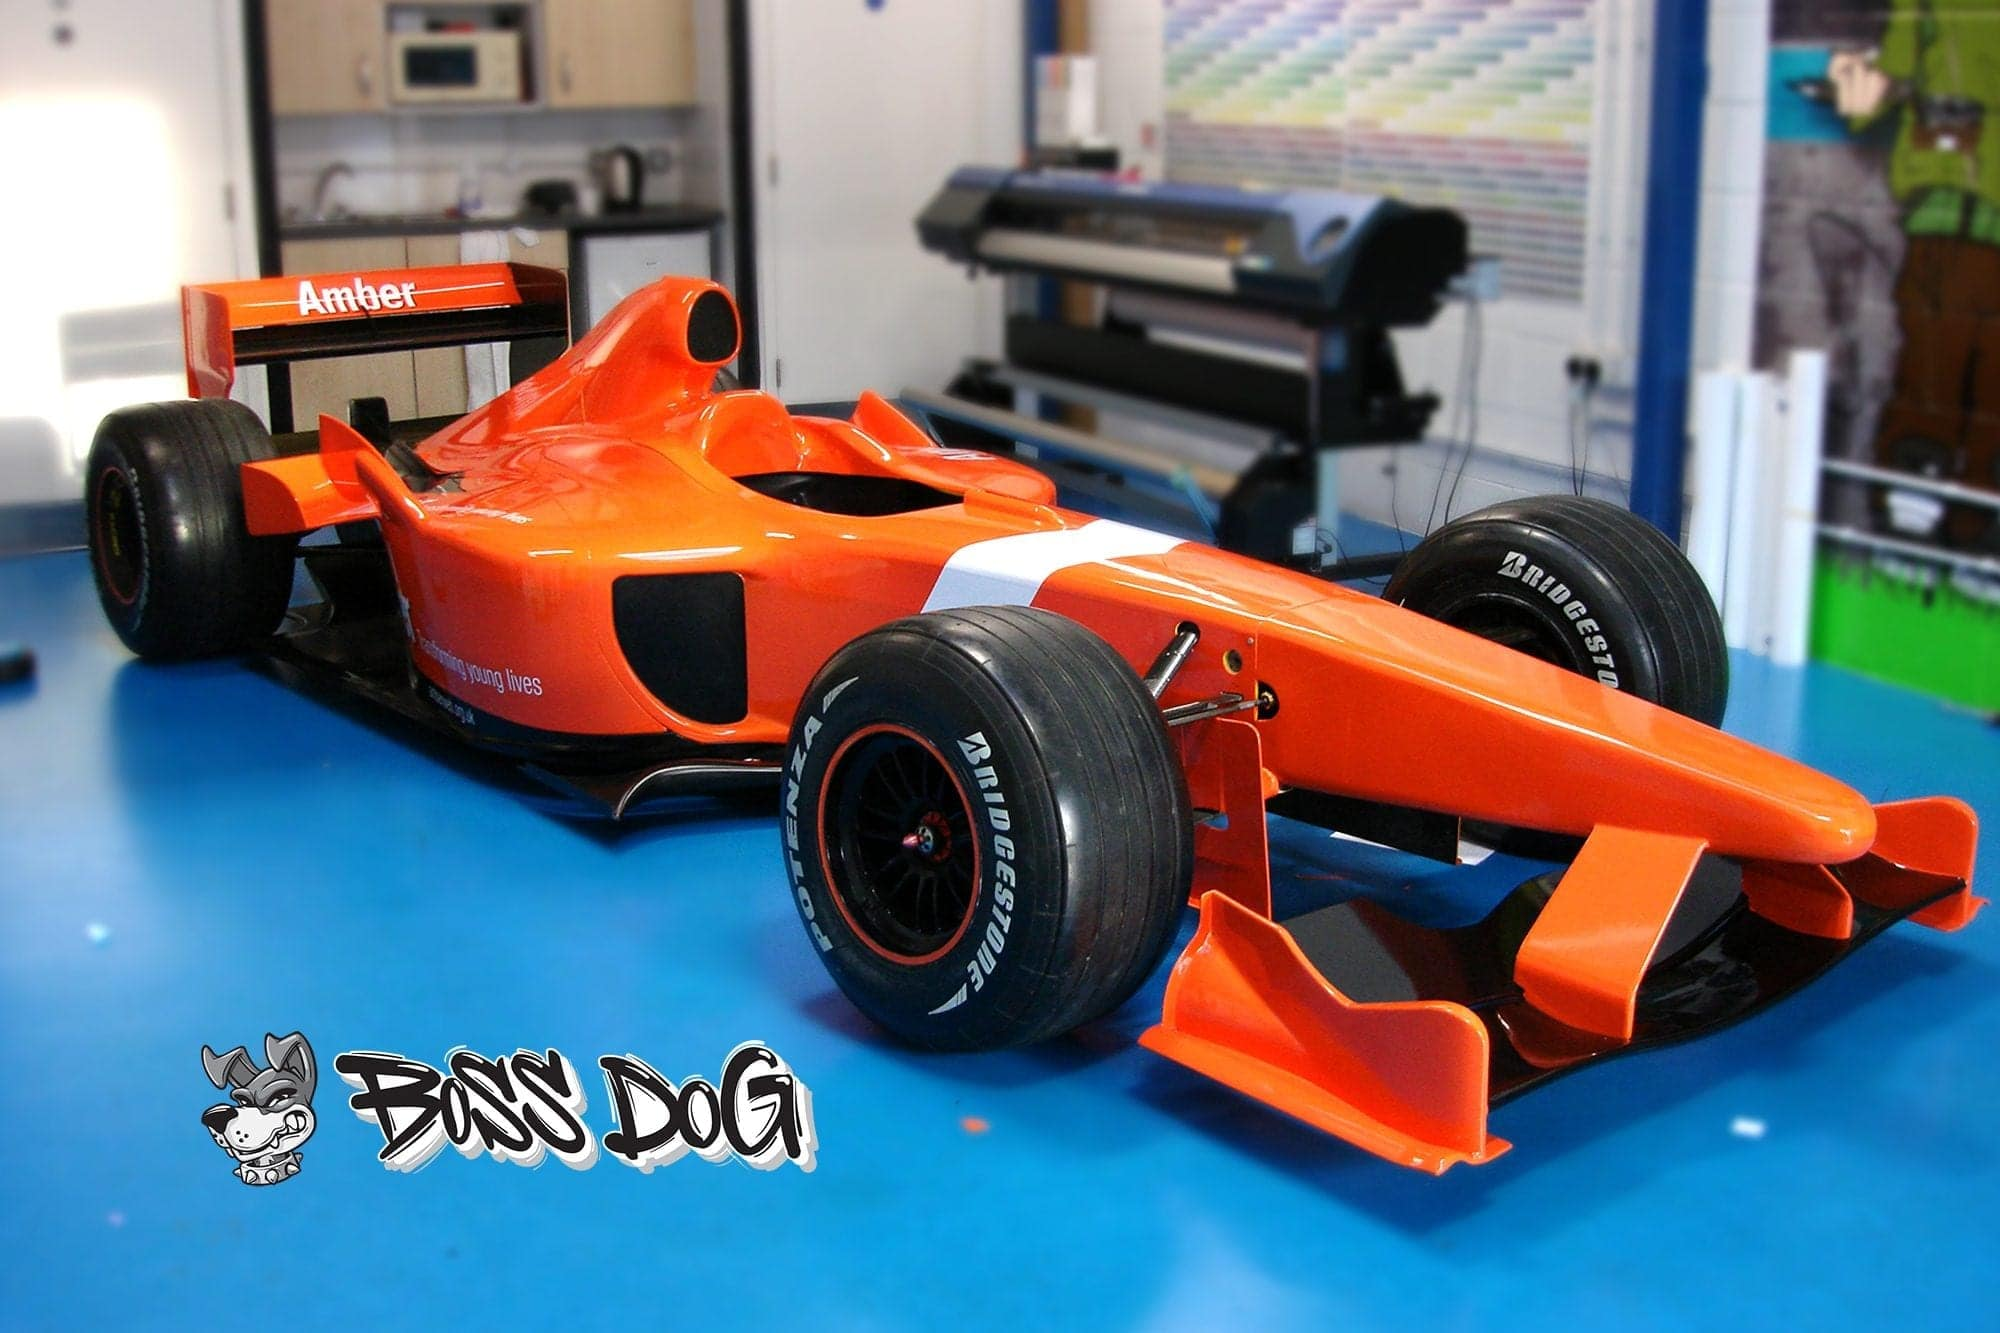 formular 1 car wrapped in gloss orange